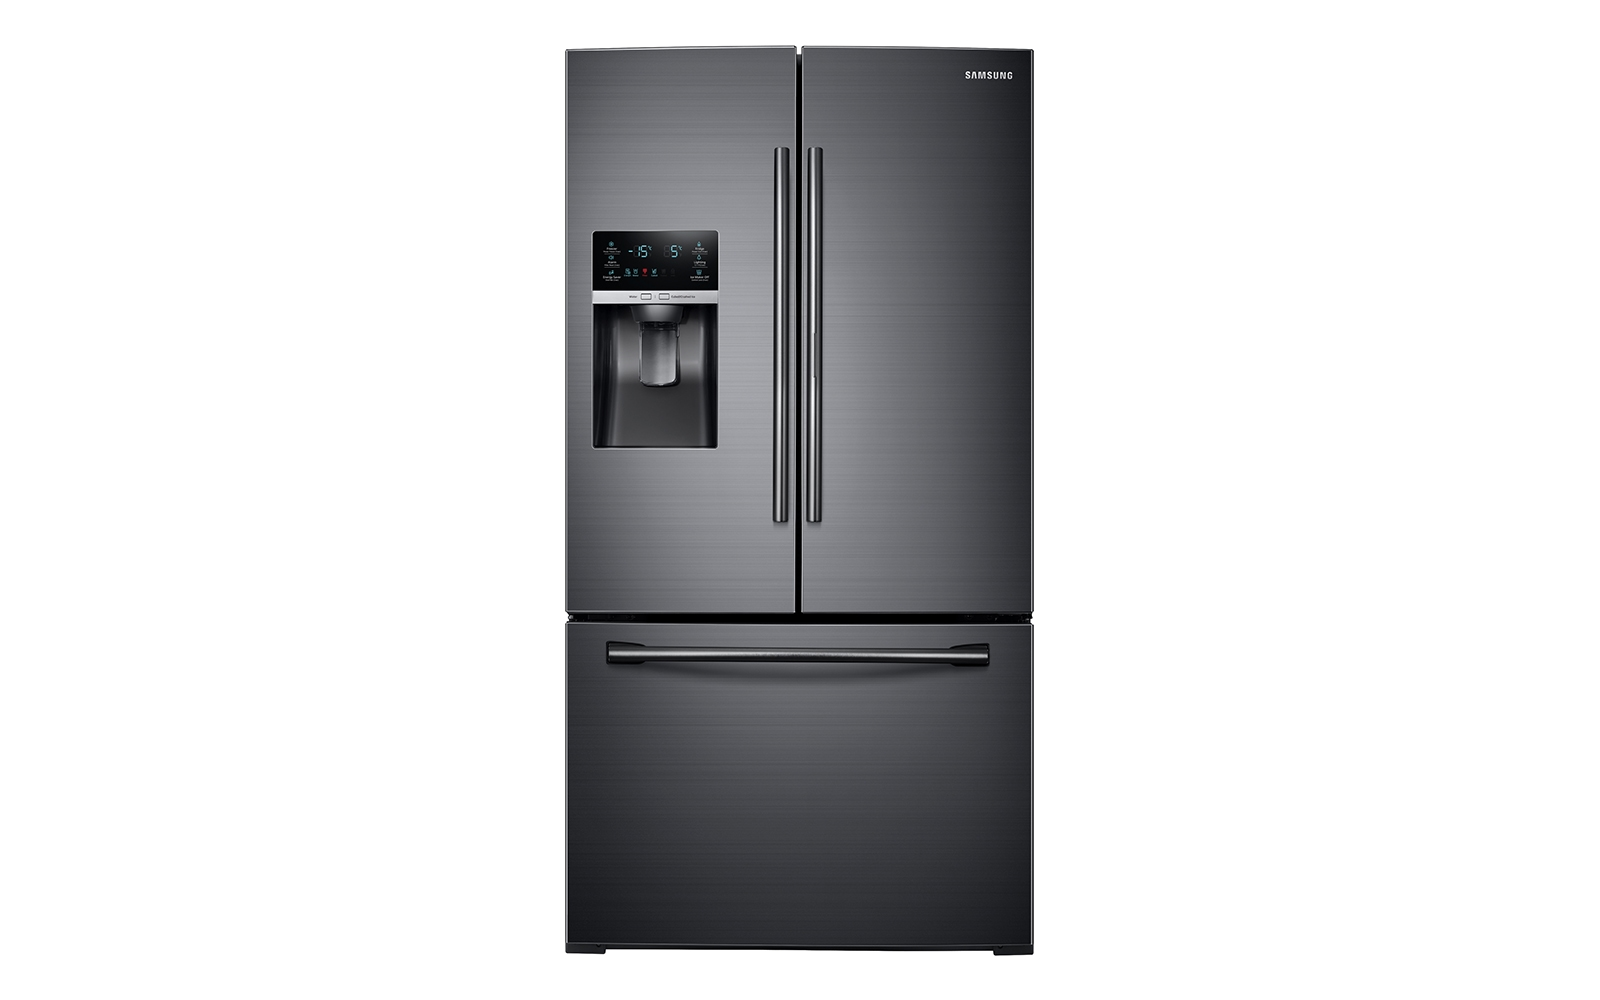 28 cu ft 3 door french door food showcase refrigerator refrigerators rf28hdedbsg aa samsung us. Black Bedroom Furniture Sets. Home Design Ideas